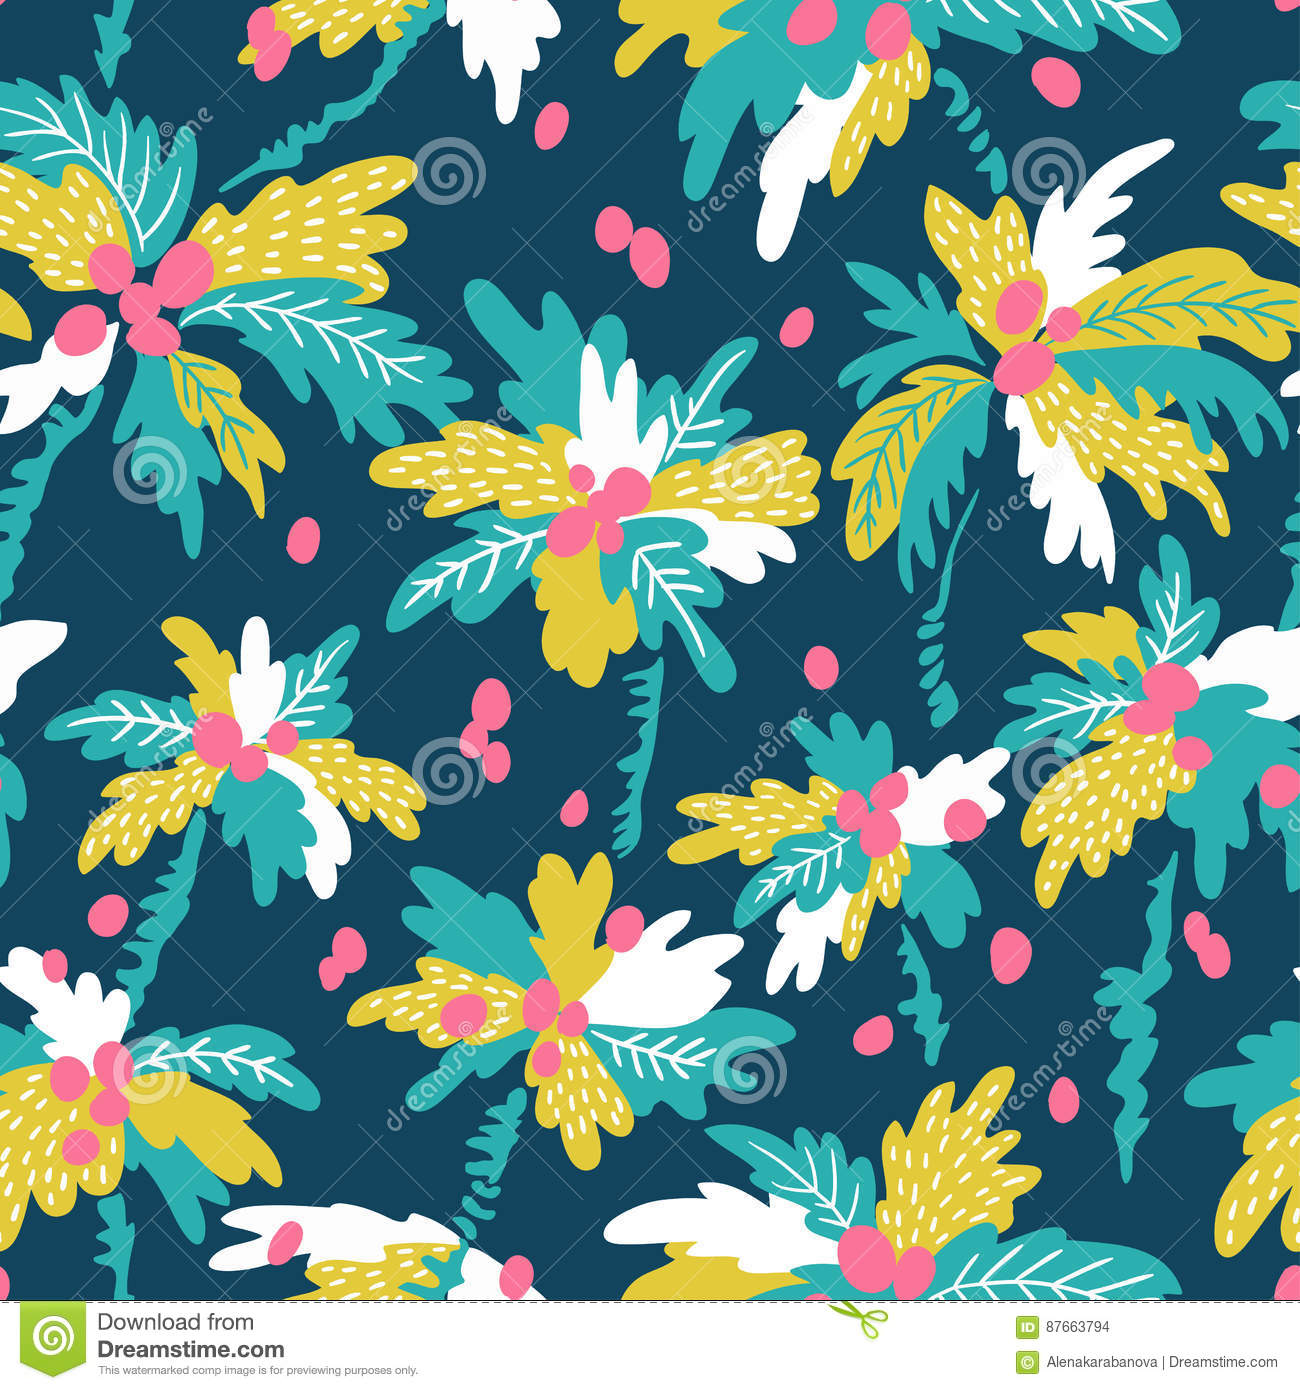 Vector seamless pattern with silhouettes tropical coconut palm trees. Summer repeating background.